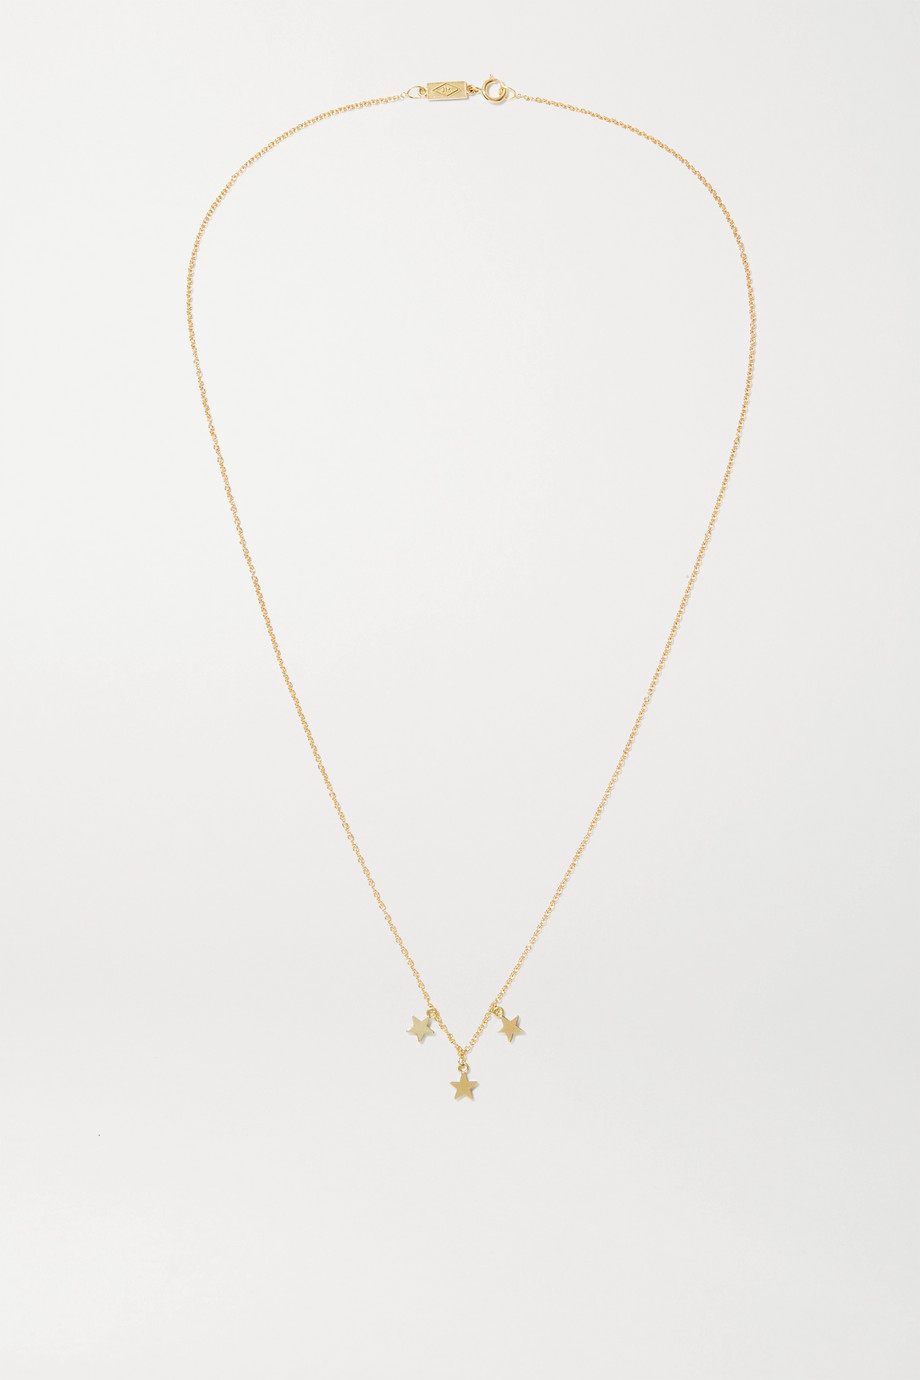 JENNIFER MEYER Mini Star 18-karat gold necklace